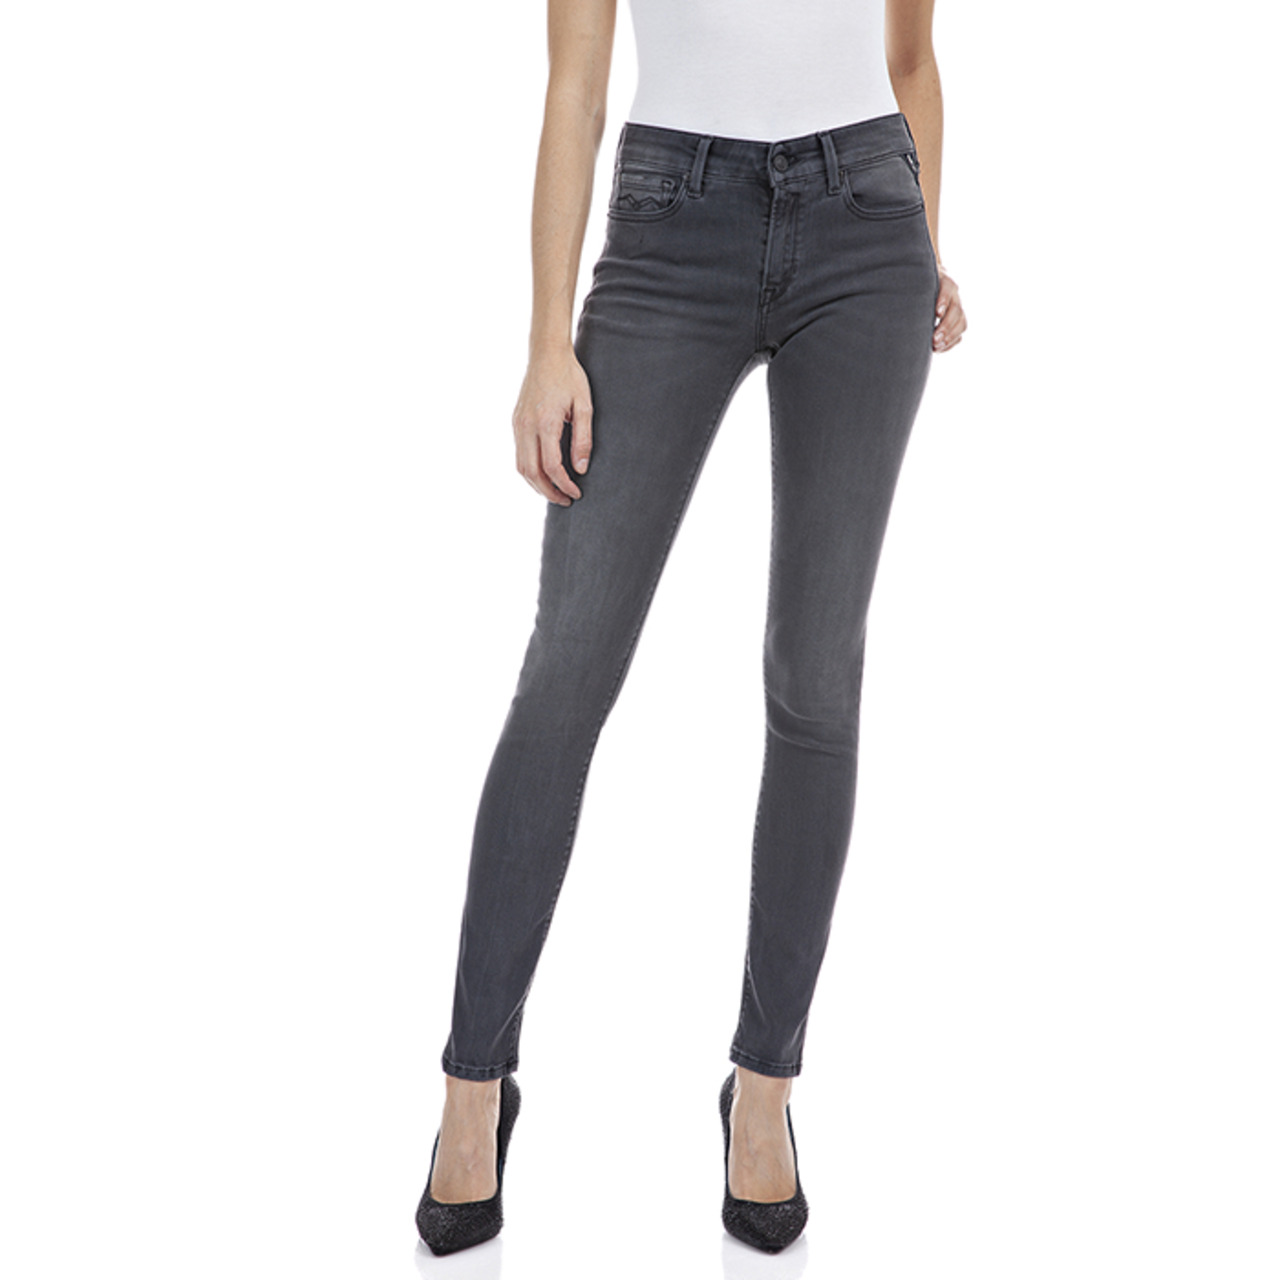 REPLAY - JEANS / NEW LUZ HYPERFLEX  RE-USED